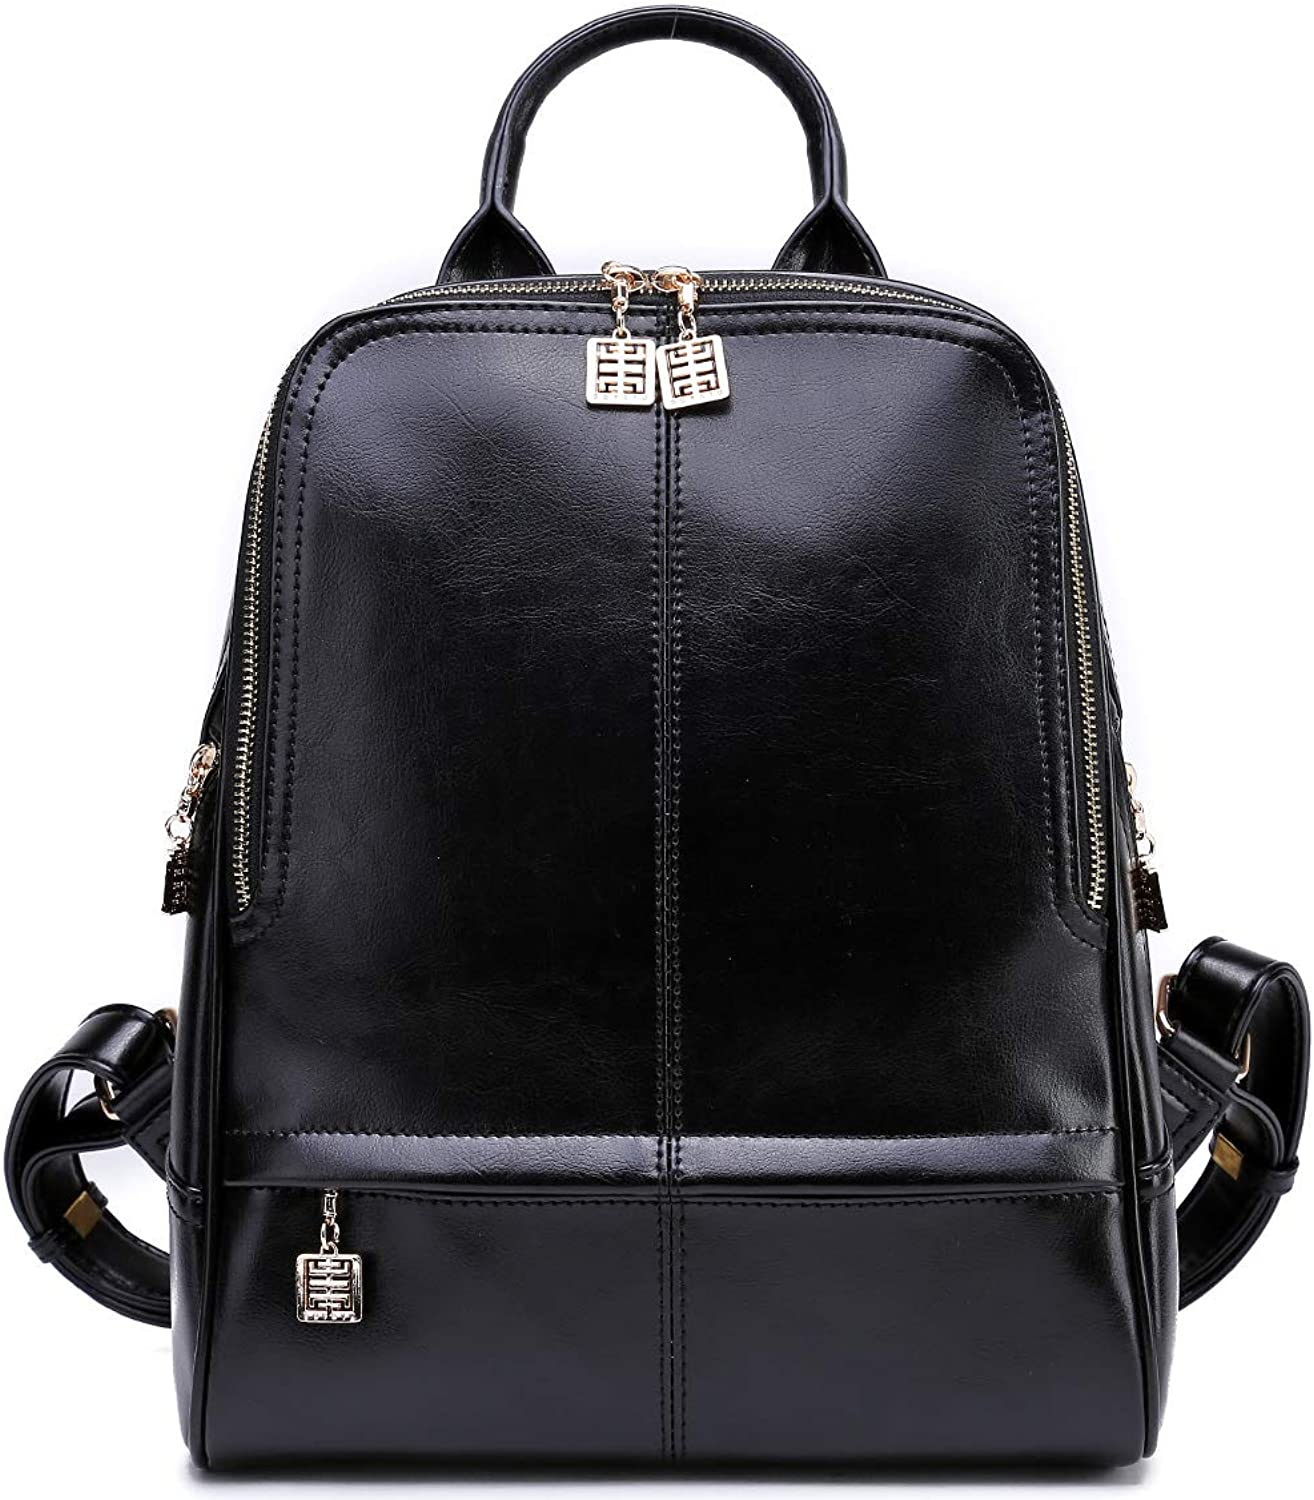 BOYATU Real Leather Backpack Purse for damen Stylish College School Ladies Bags